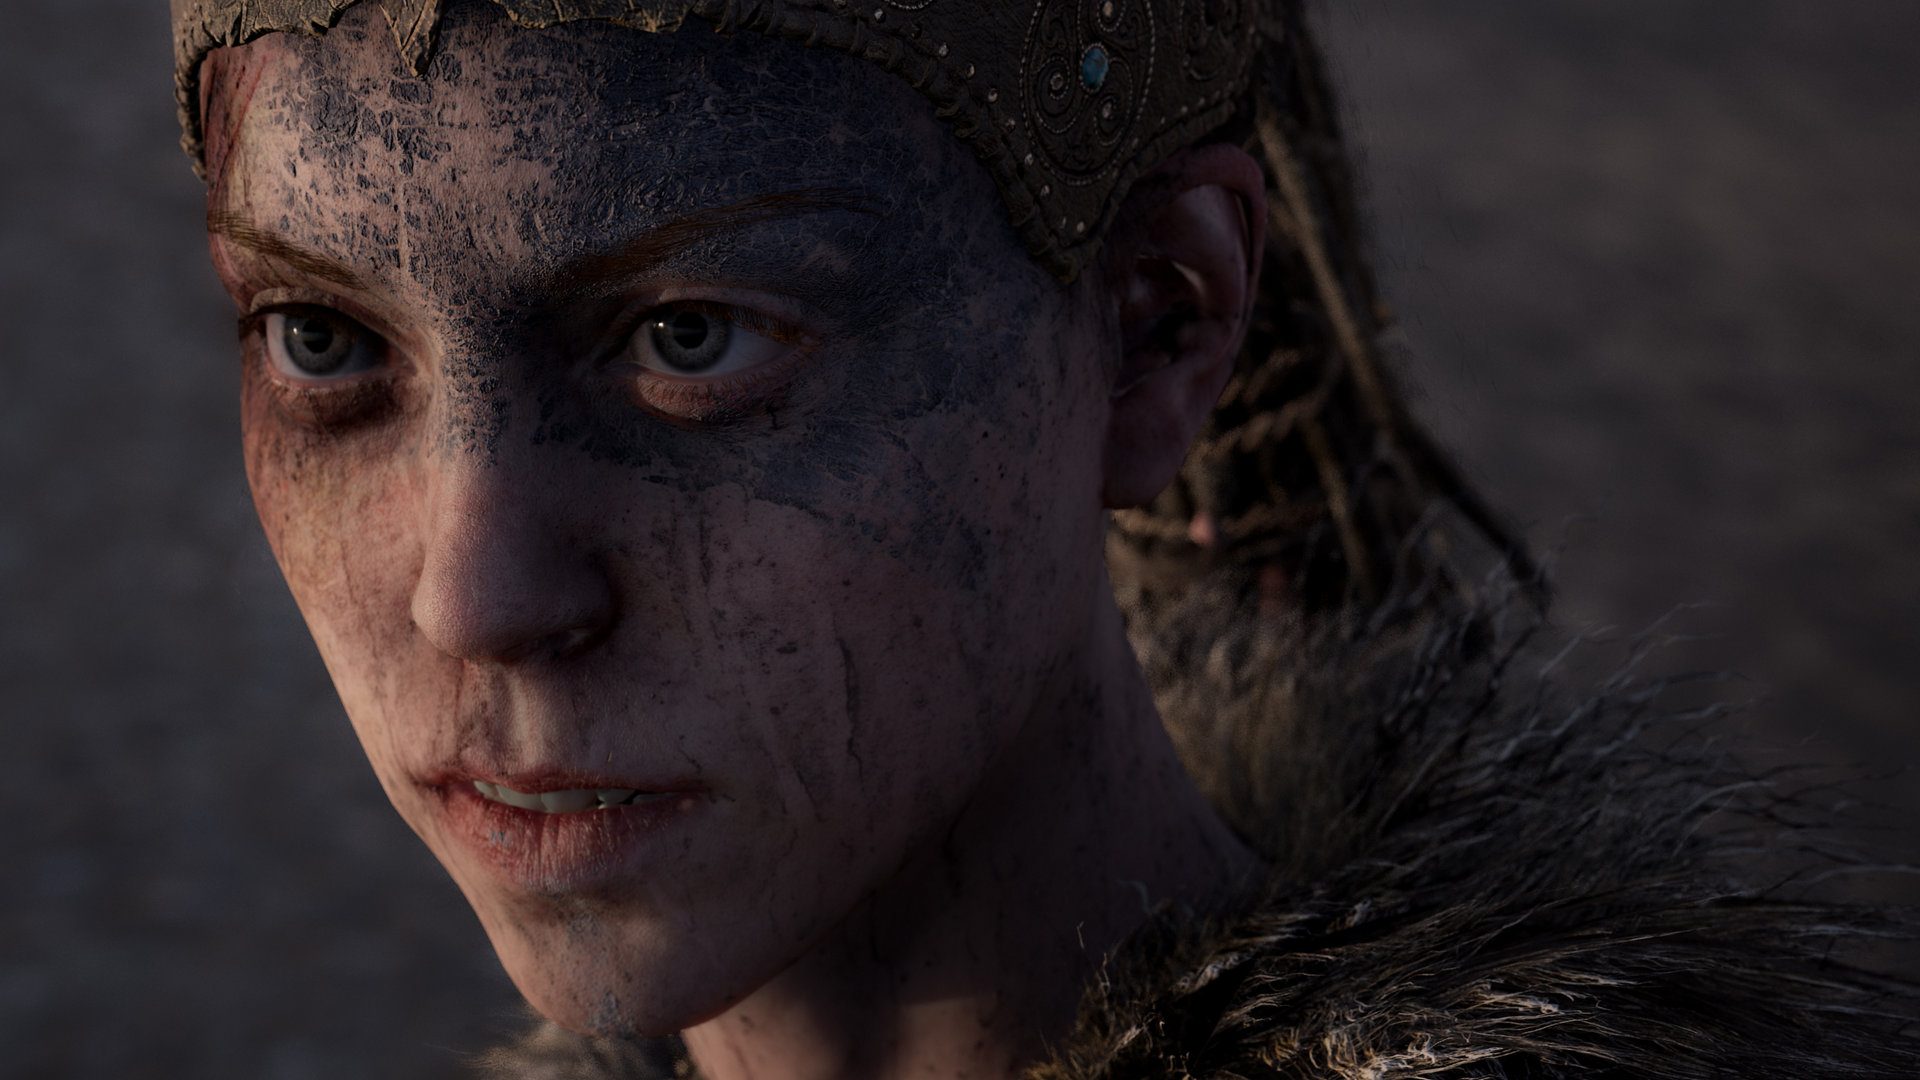 hellblade-senuas-sacrifice-screen-03-ps4